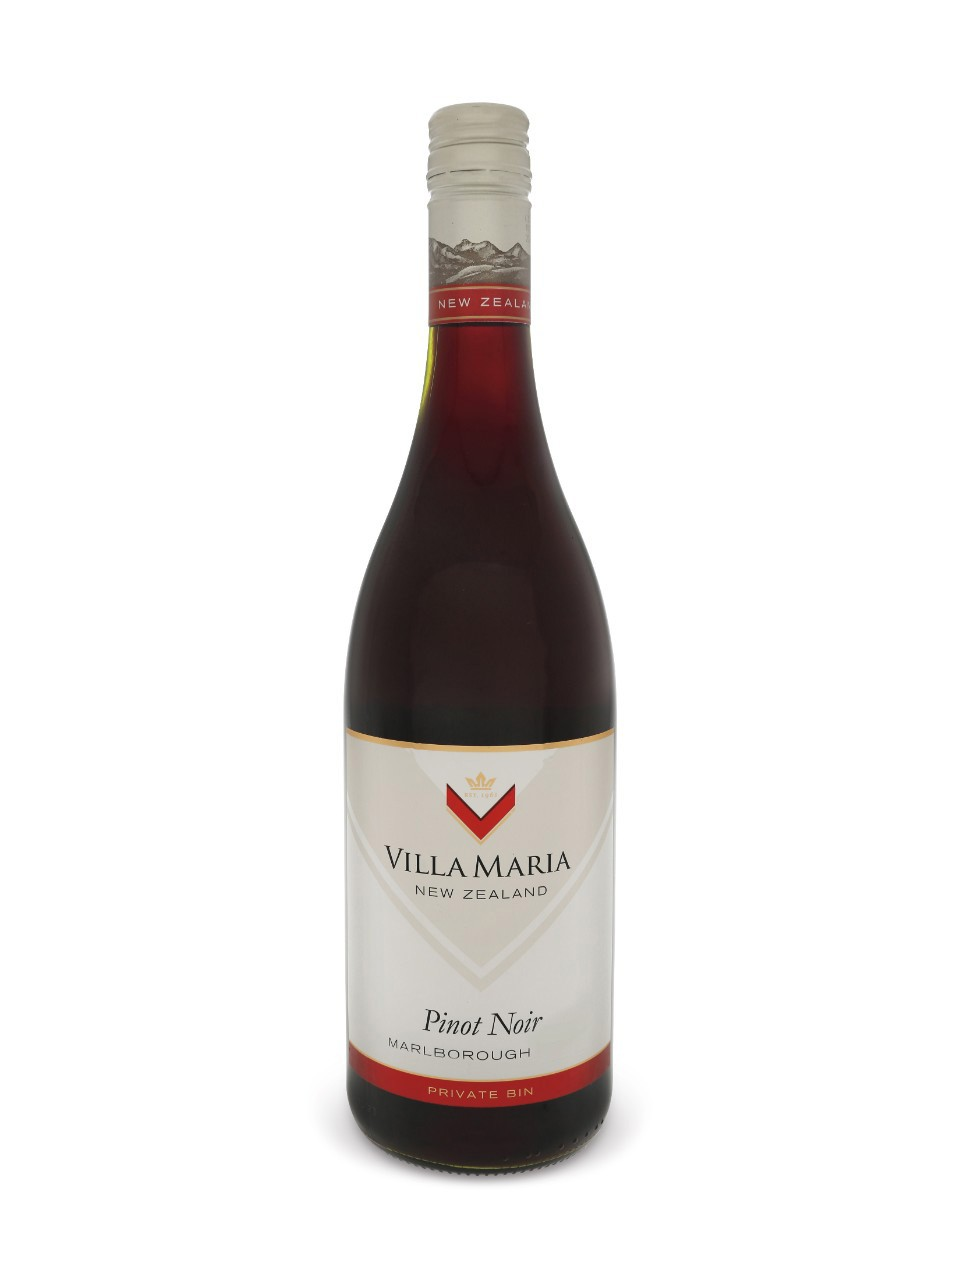 Villa Maria Private Bin Pinot Noir Marlborough